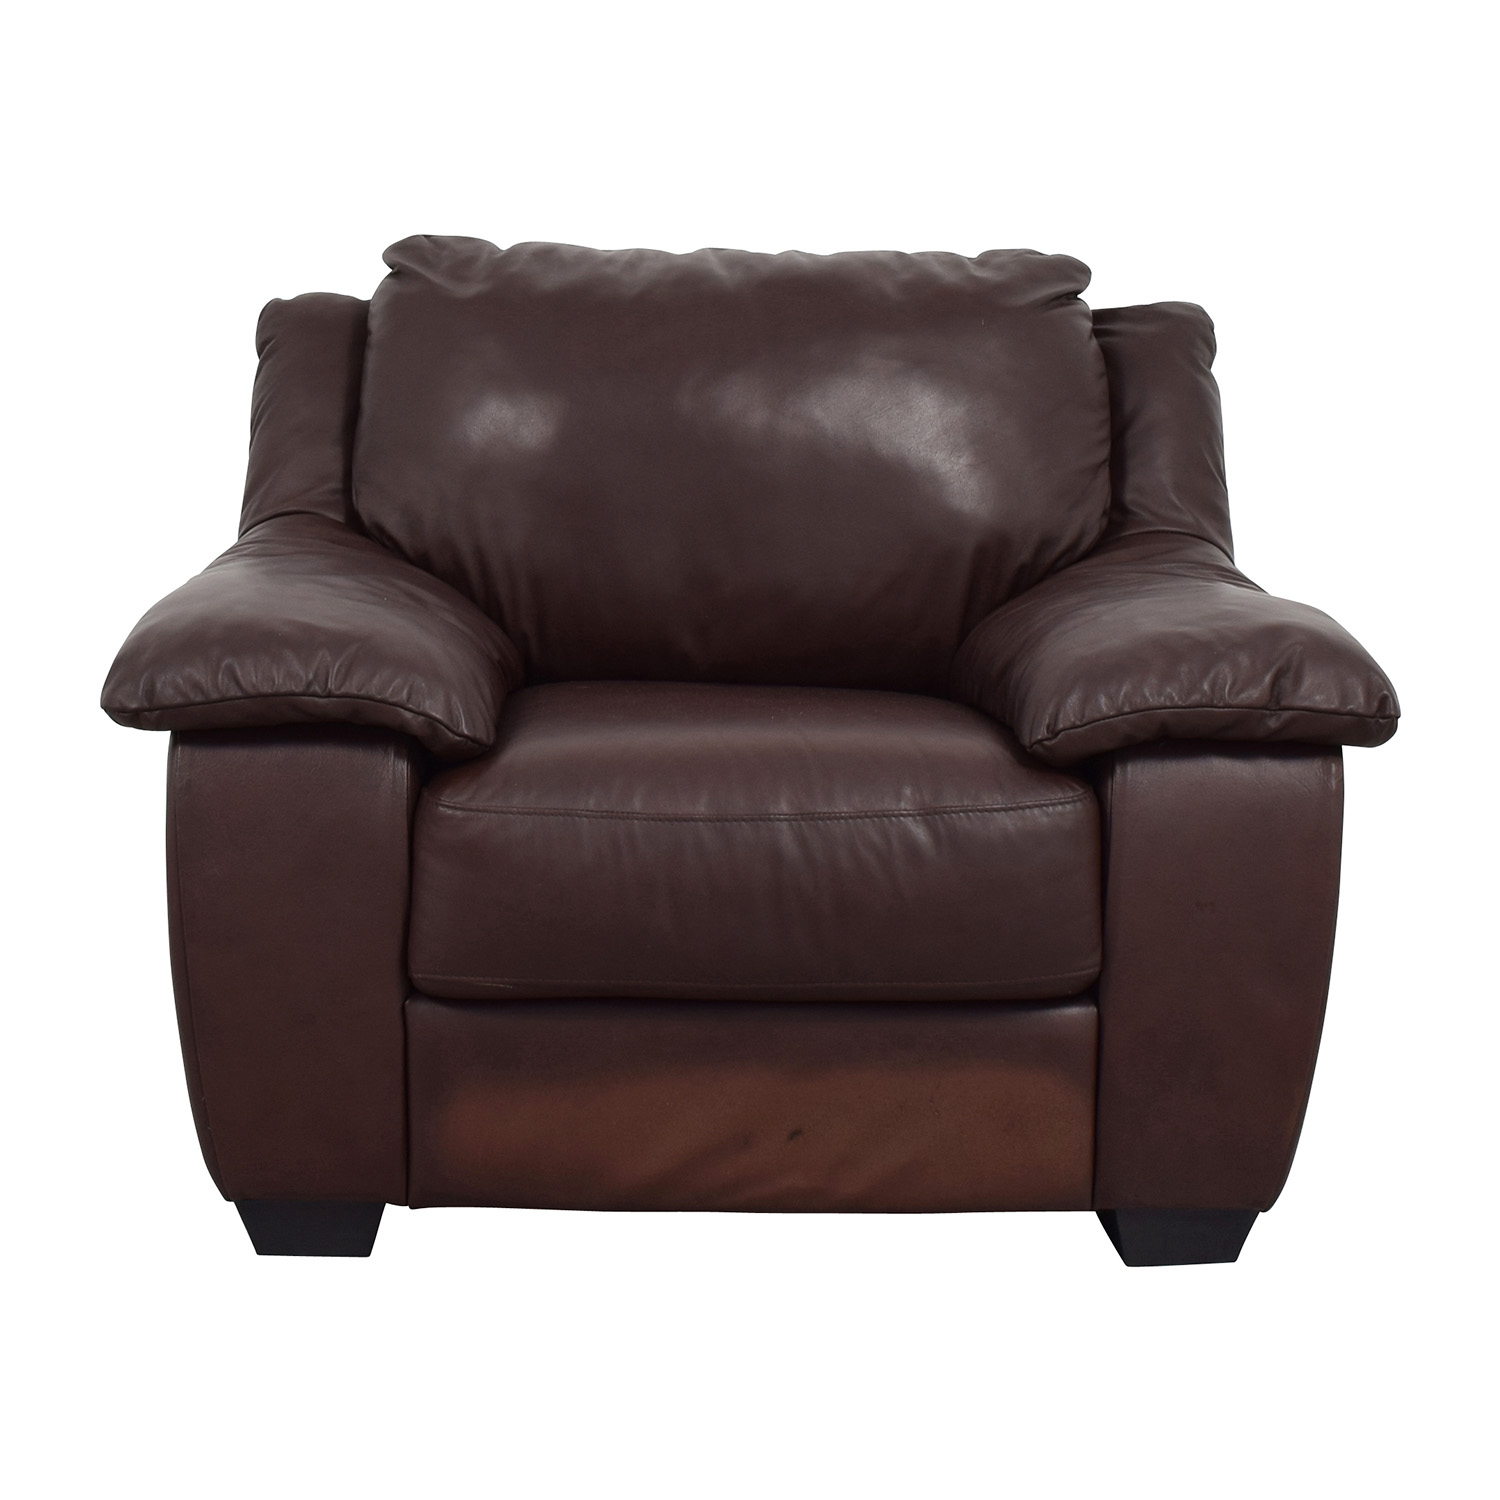 Plush Chairs 84 Off Natuzzi Italsofa Brown Leather Plush Armchair Chairs